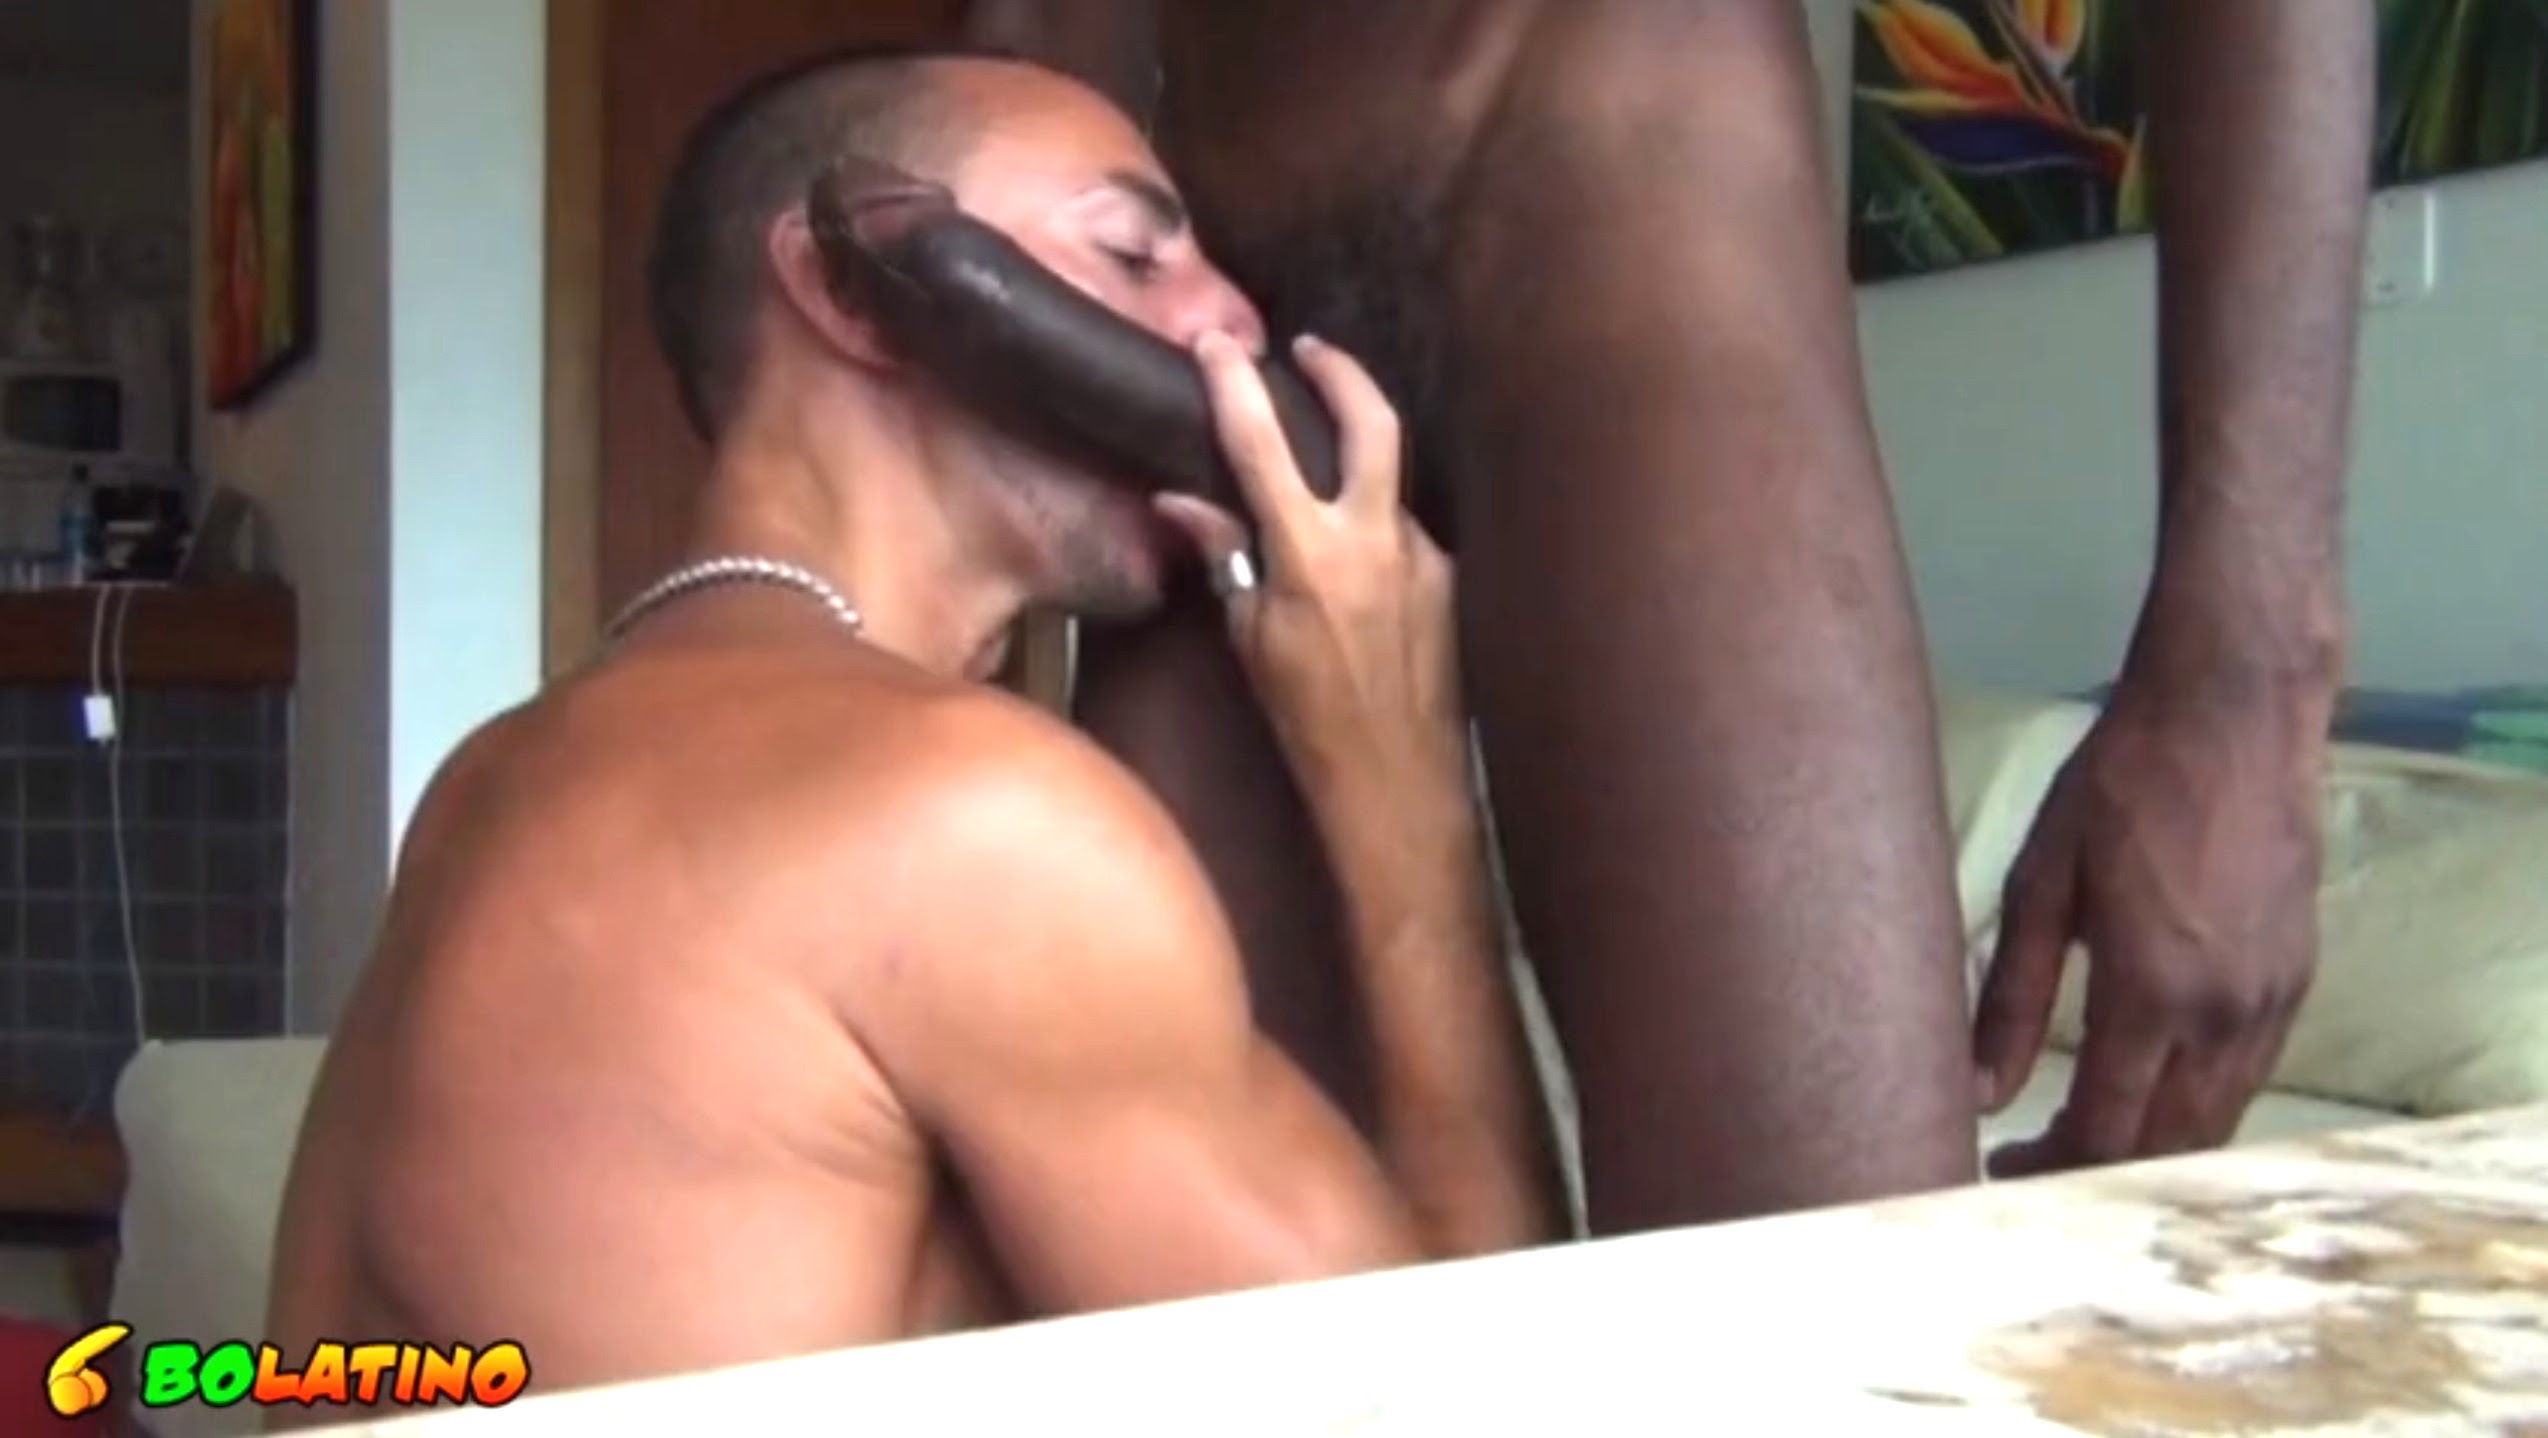 enorme bite de black gay baise gay nature